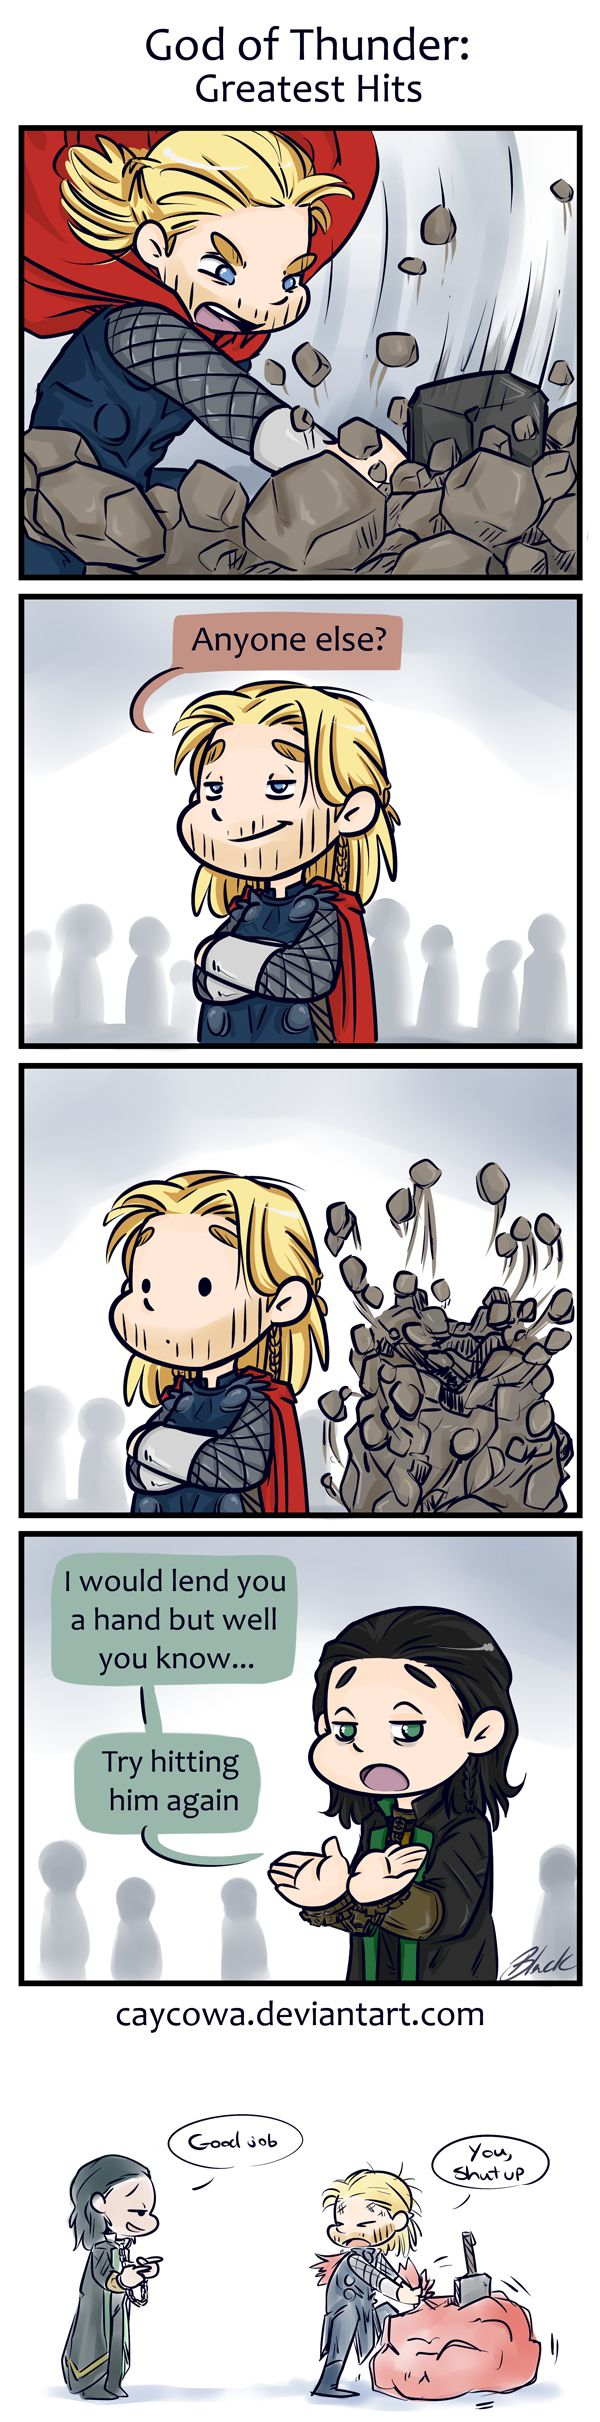 Thor 2 - God of Thunder: Greatest Hits by caycowa.deviantart.com on @deviantART